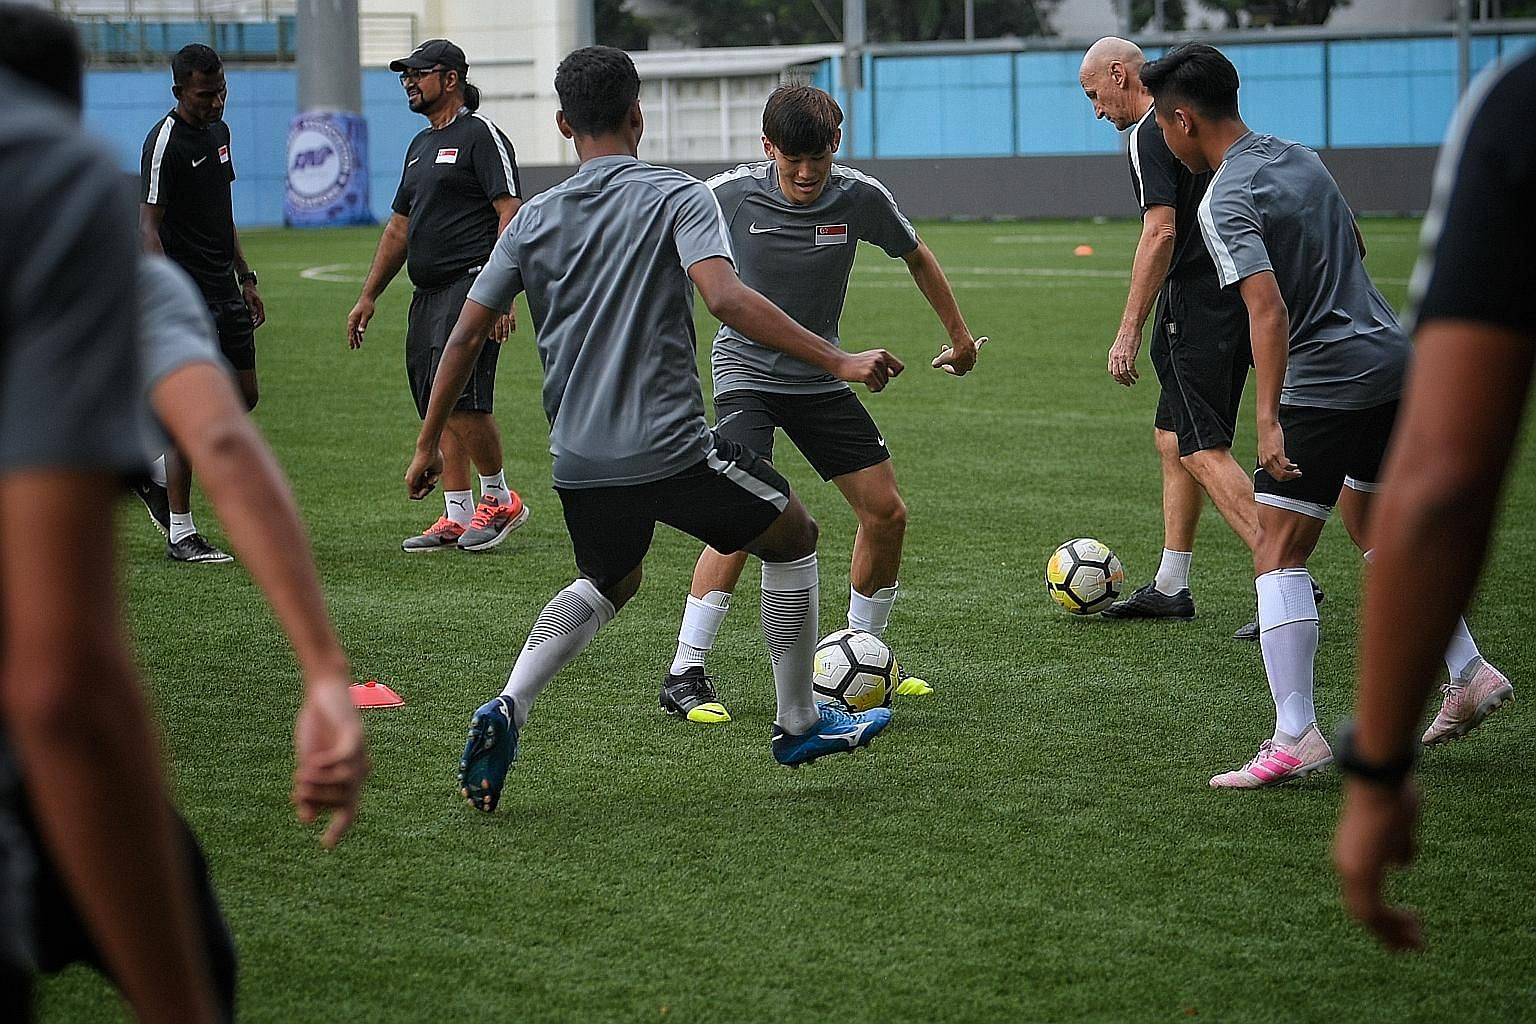 The Singapore Under-22 team training yesterday ahead of the Merlion Cup game against the Philippines at Jalan Besar Stadium tonight.